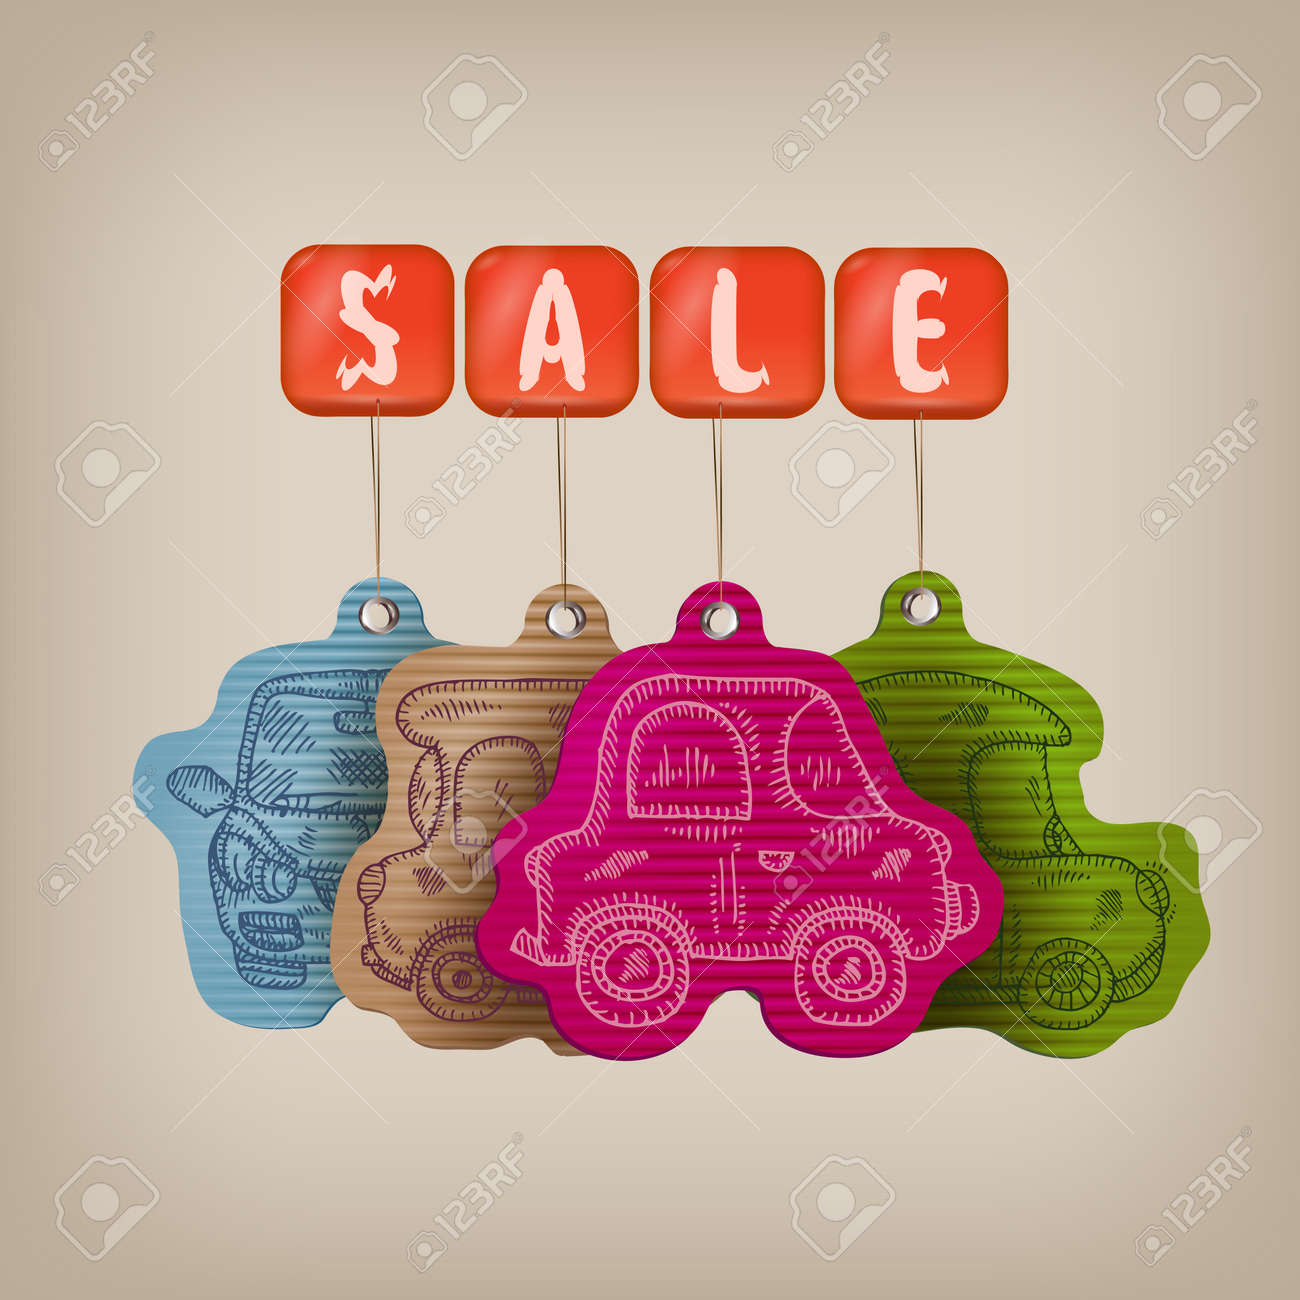 Car sale illustration Stock Vector - 22734286